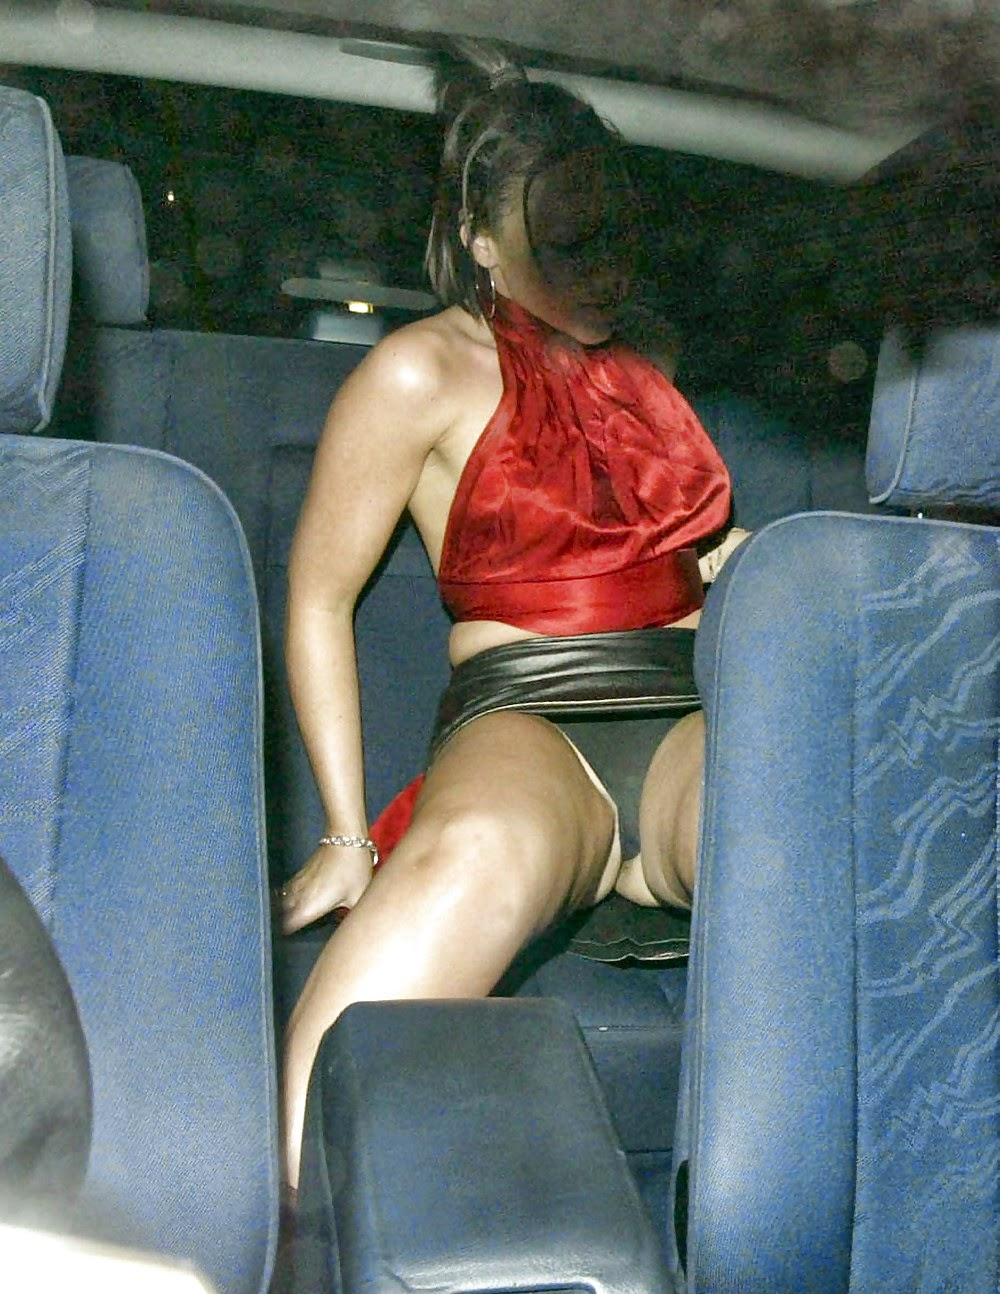 kourtney kardashian porn past